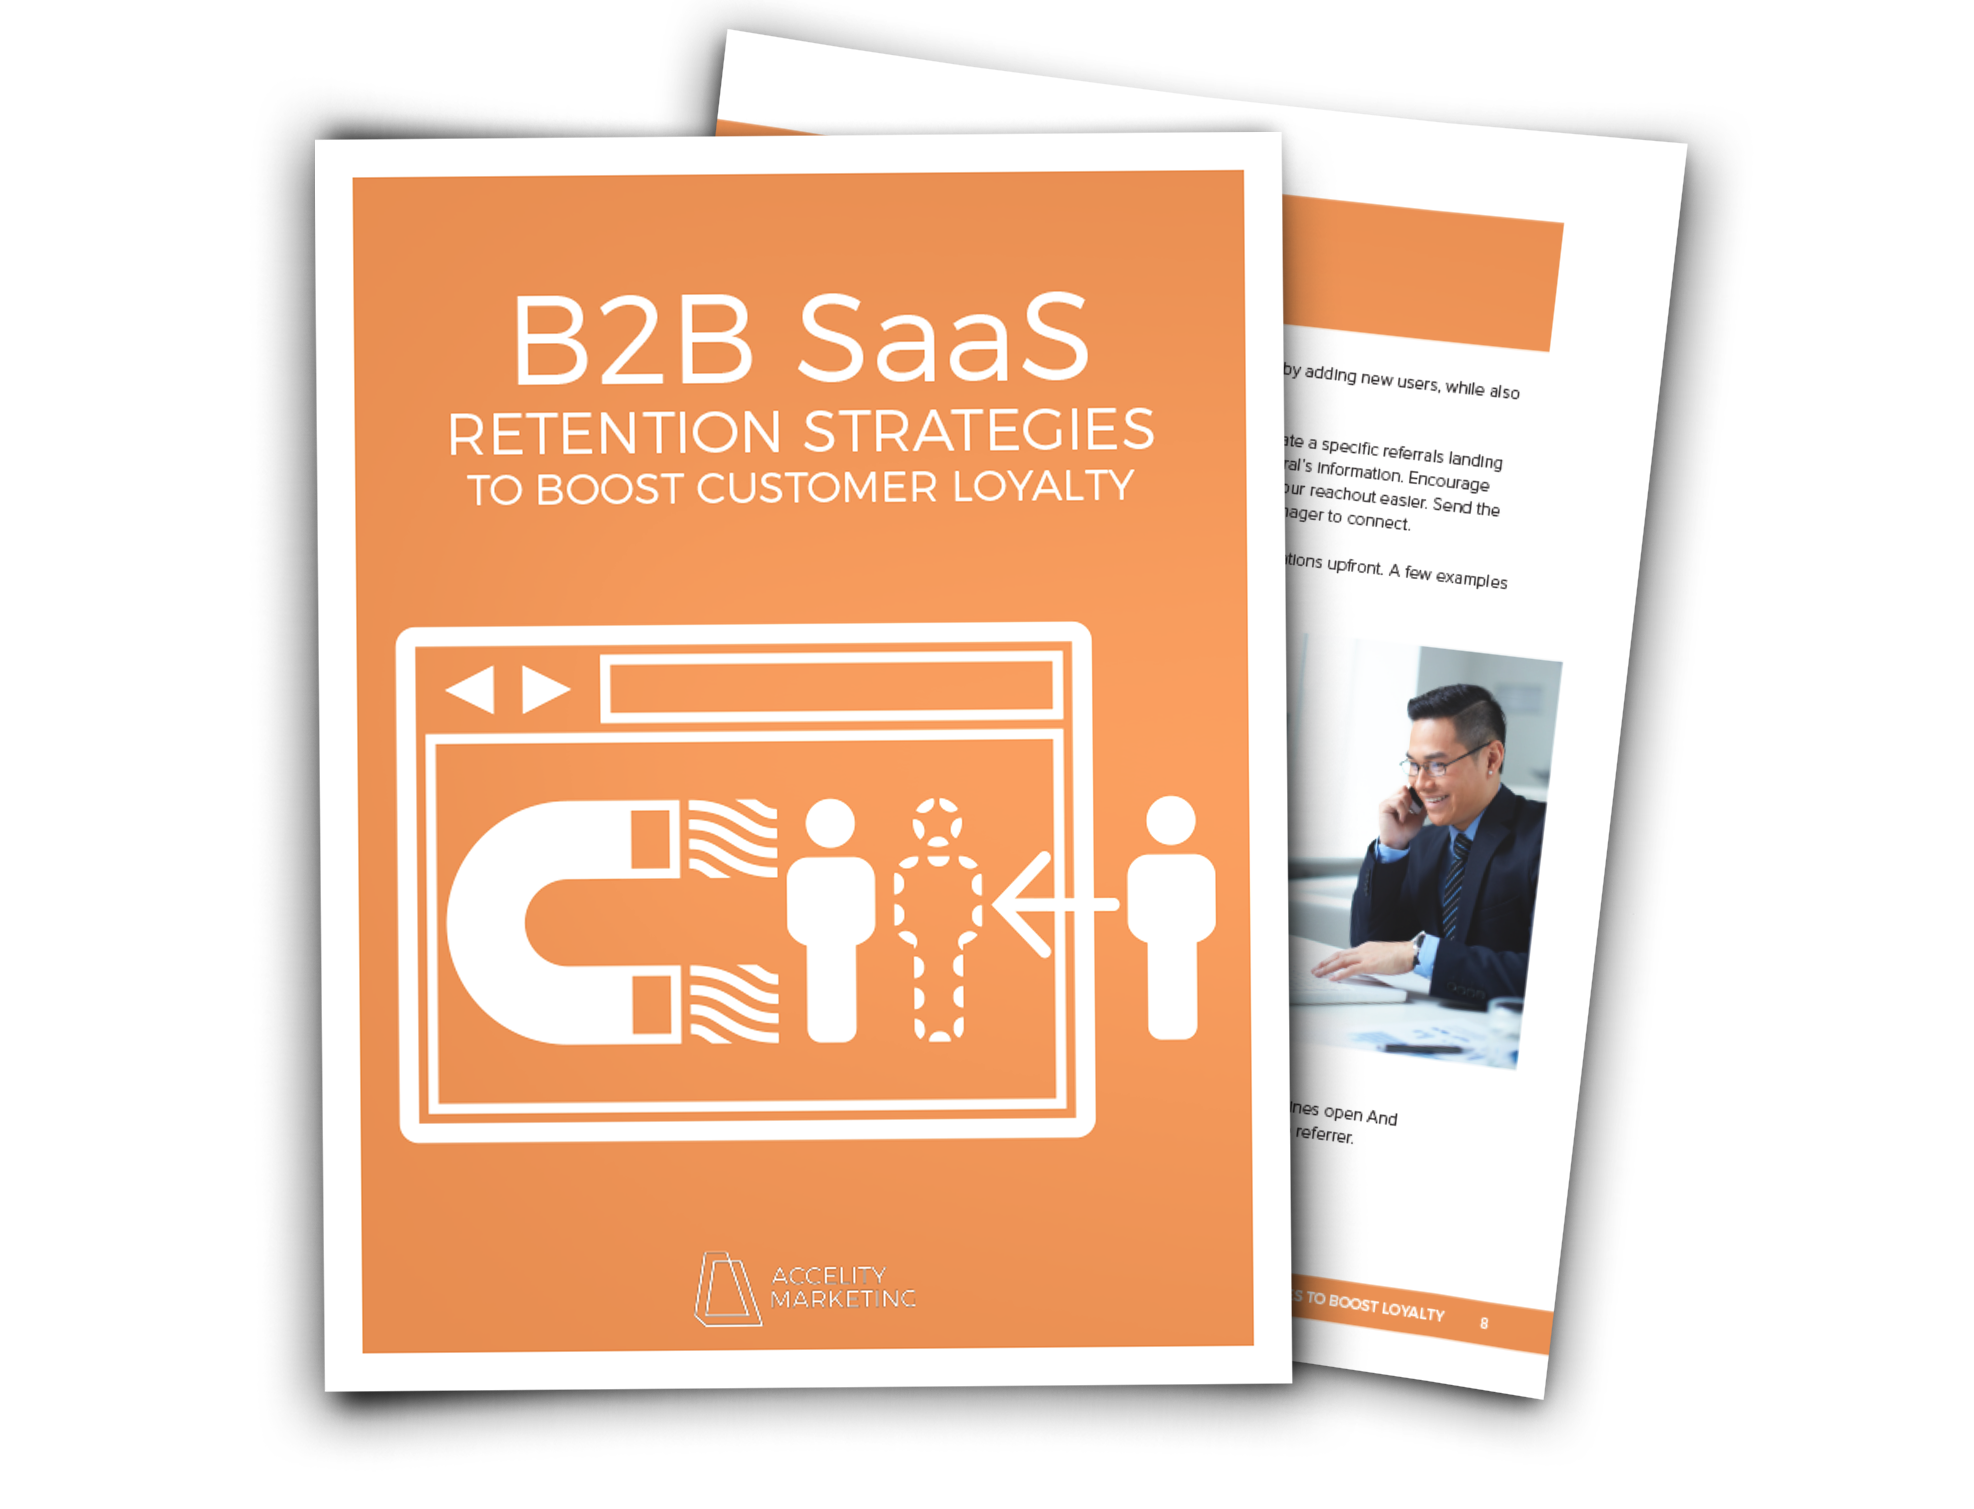 B2B Saas Retention Strategies to Boost Customer Loyalty